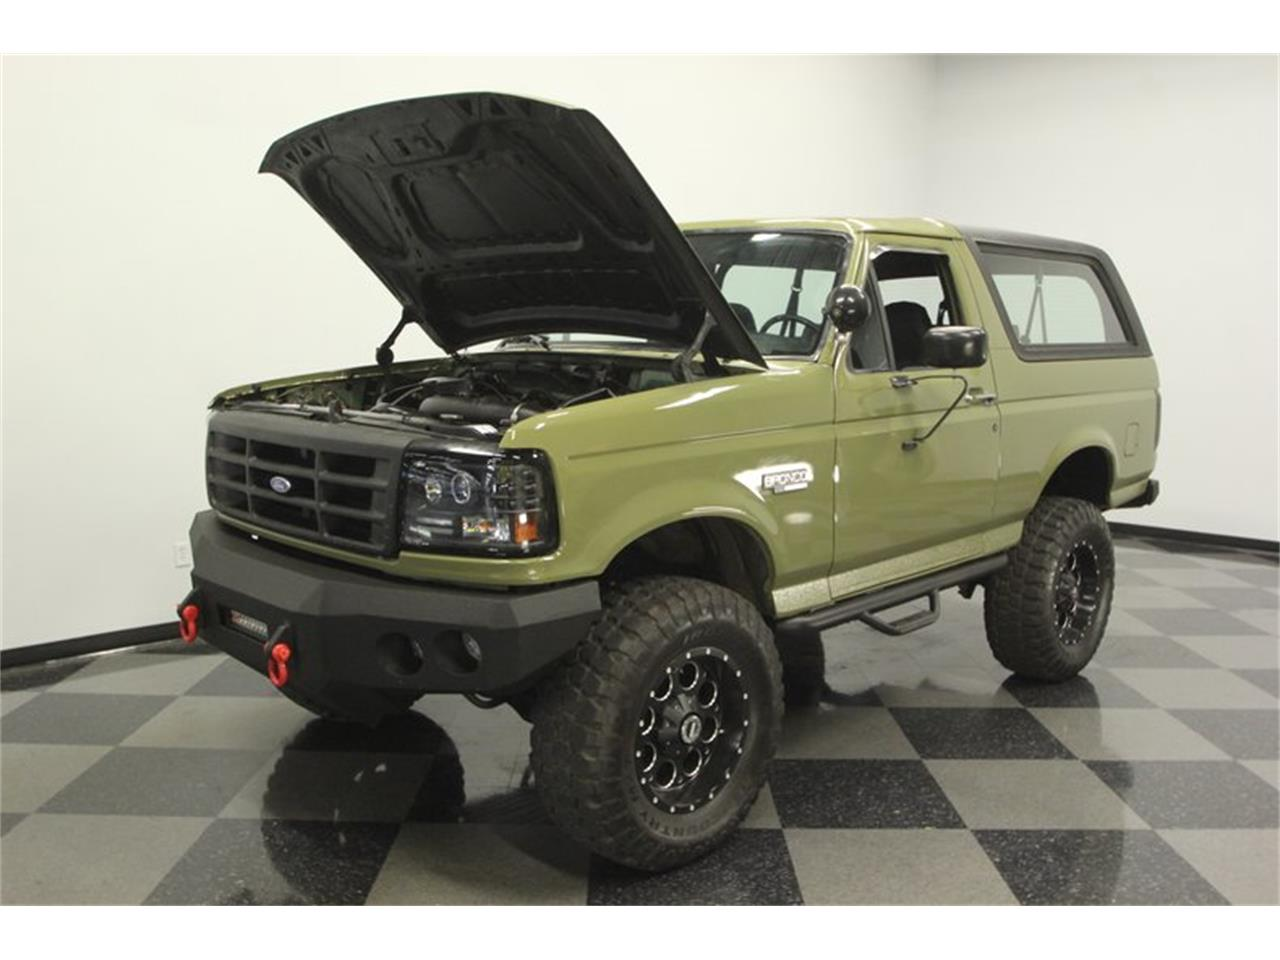 1996 Ford Bronco for sale in Lutz, FL – photo 35